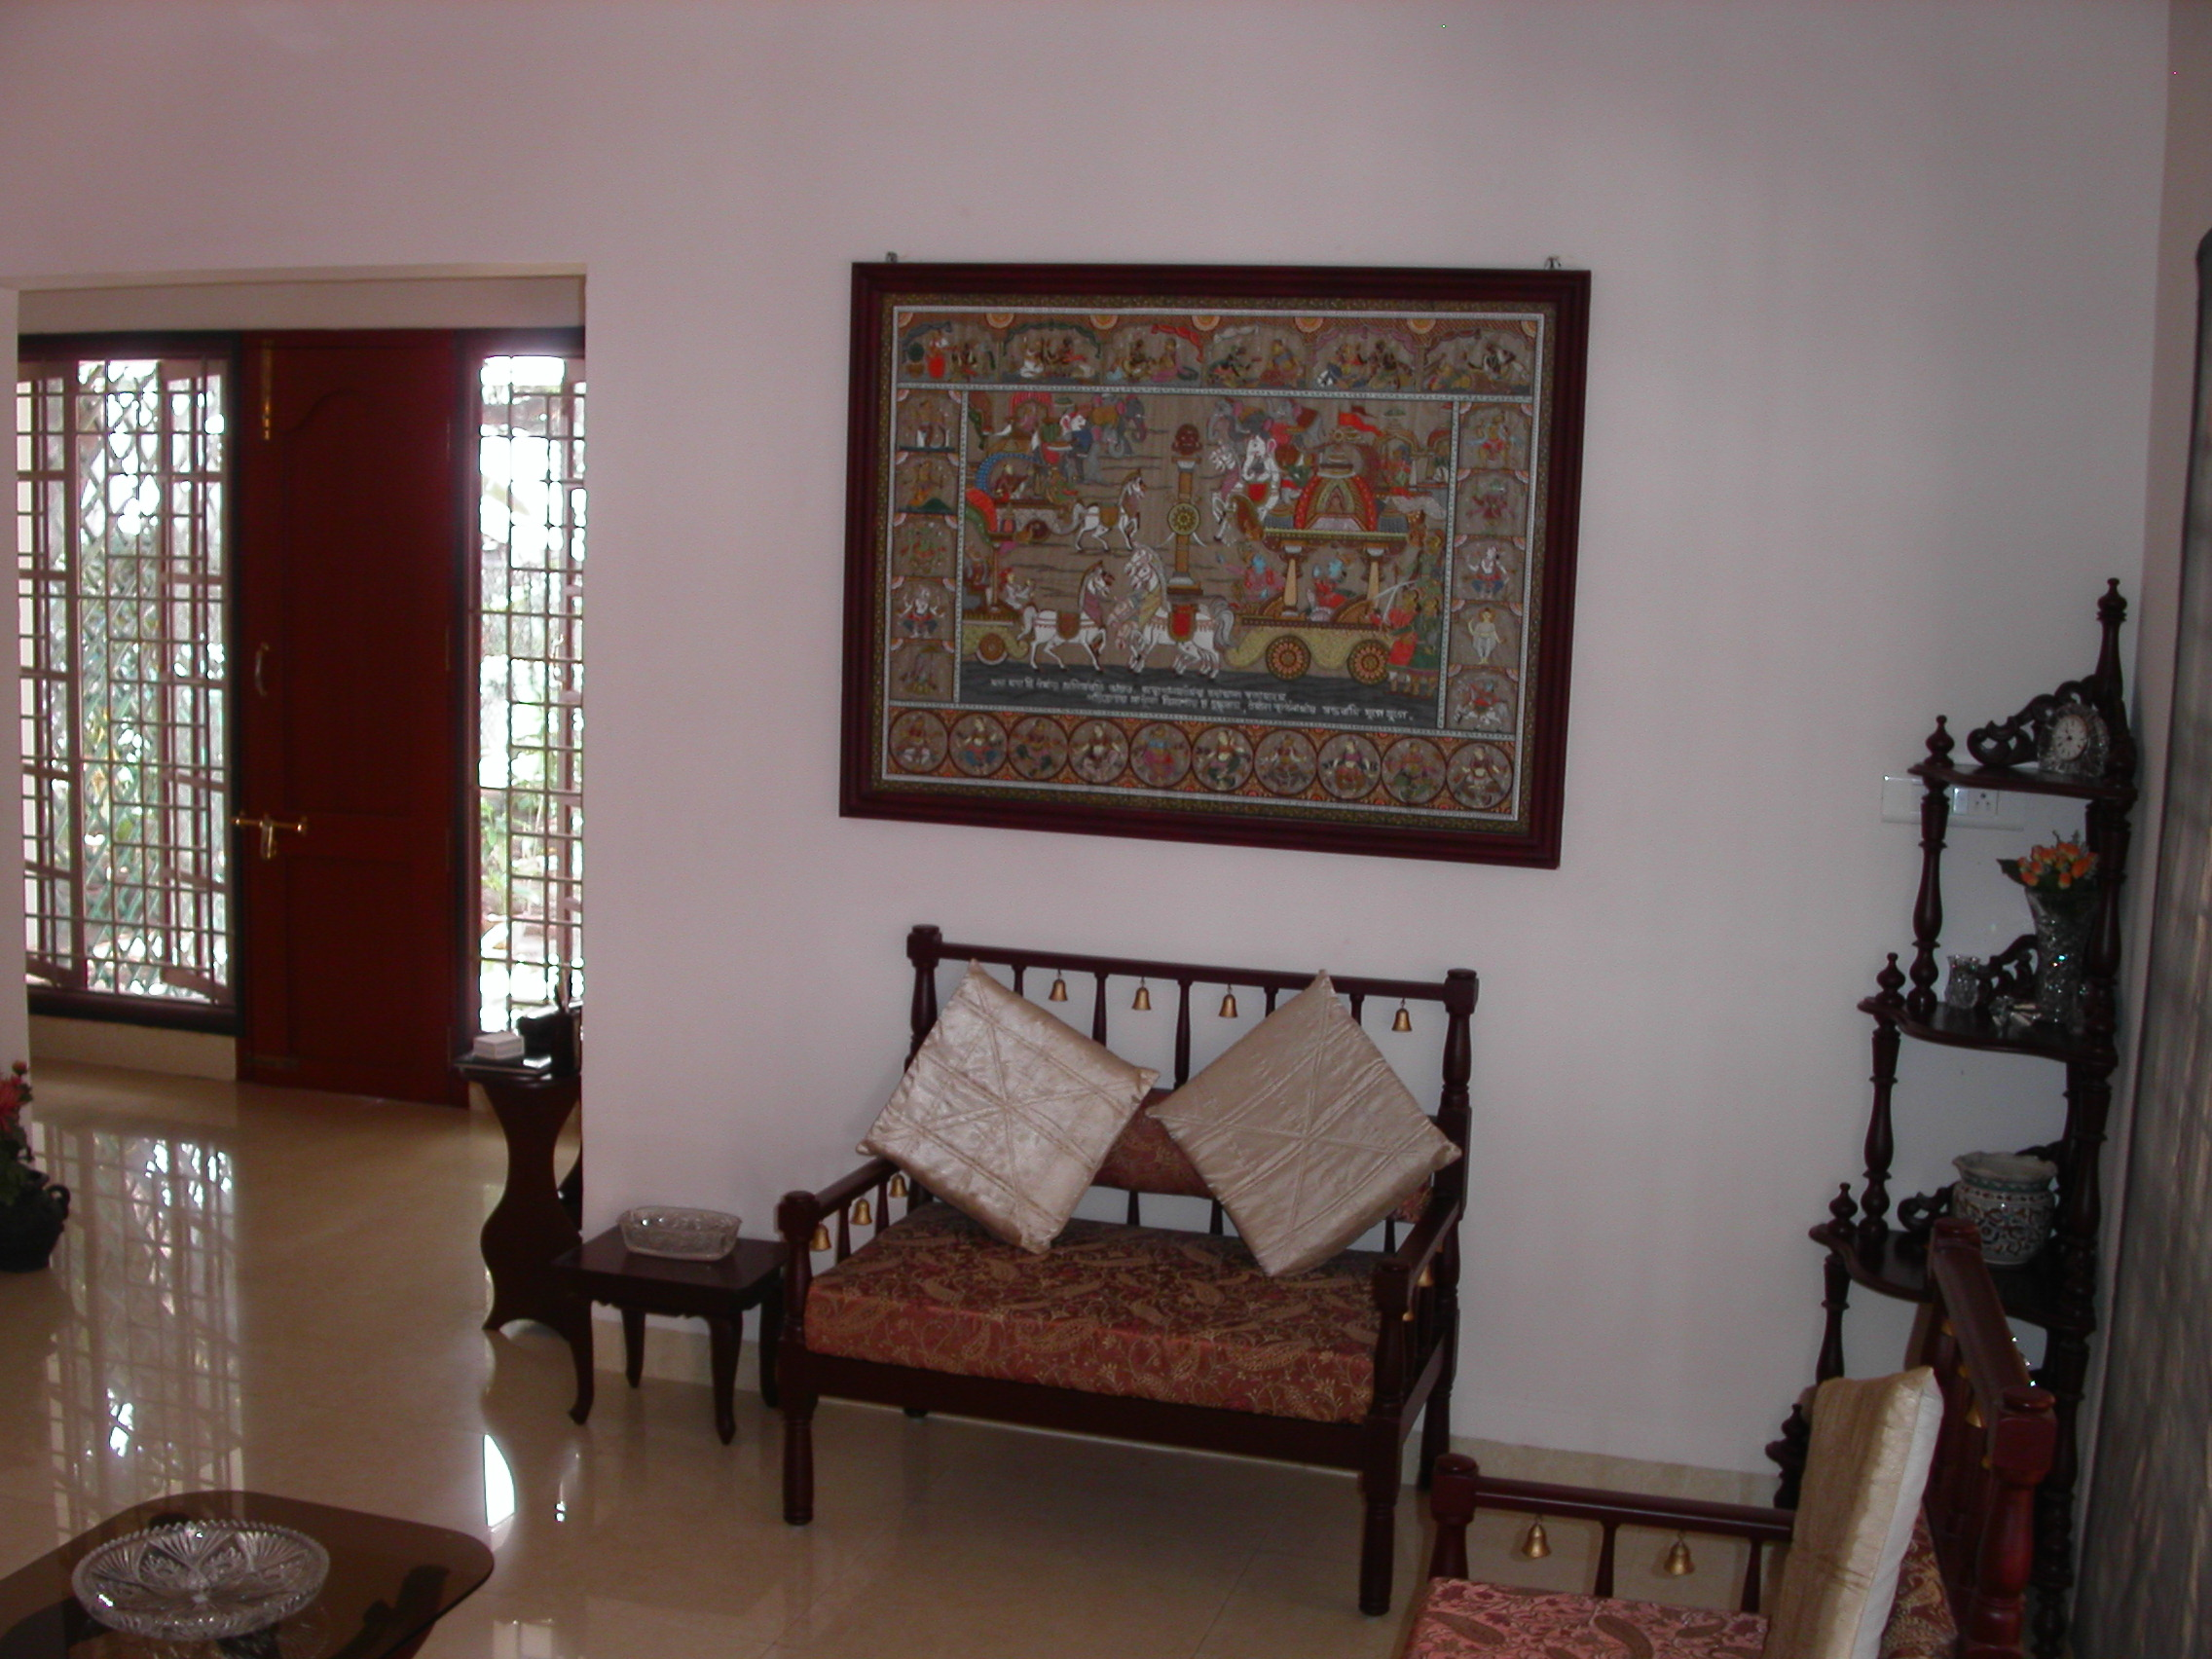 home decor s india neha animesh - Indian Home Decor